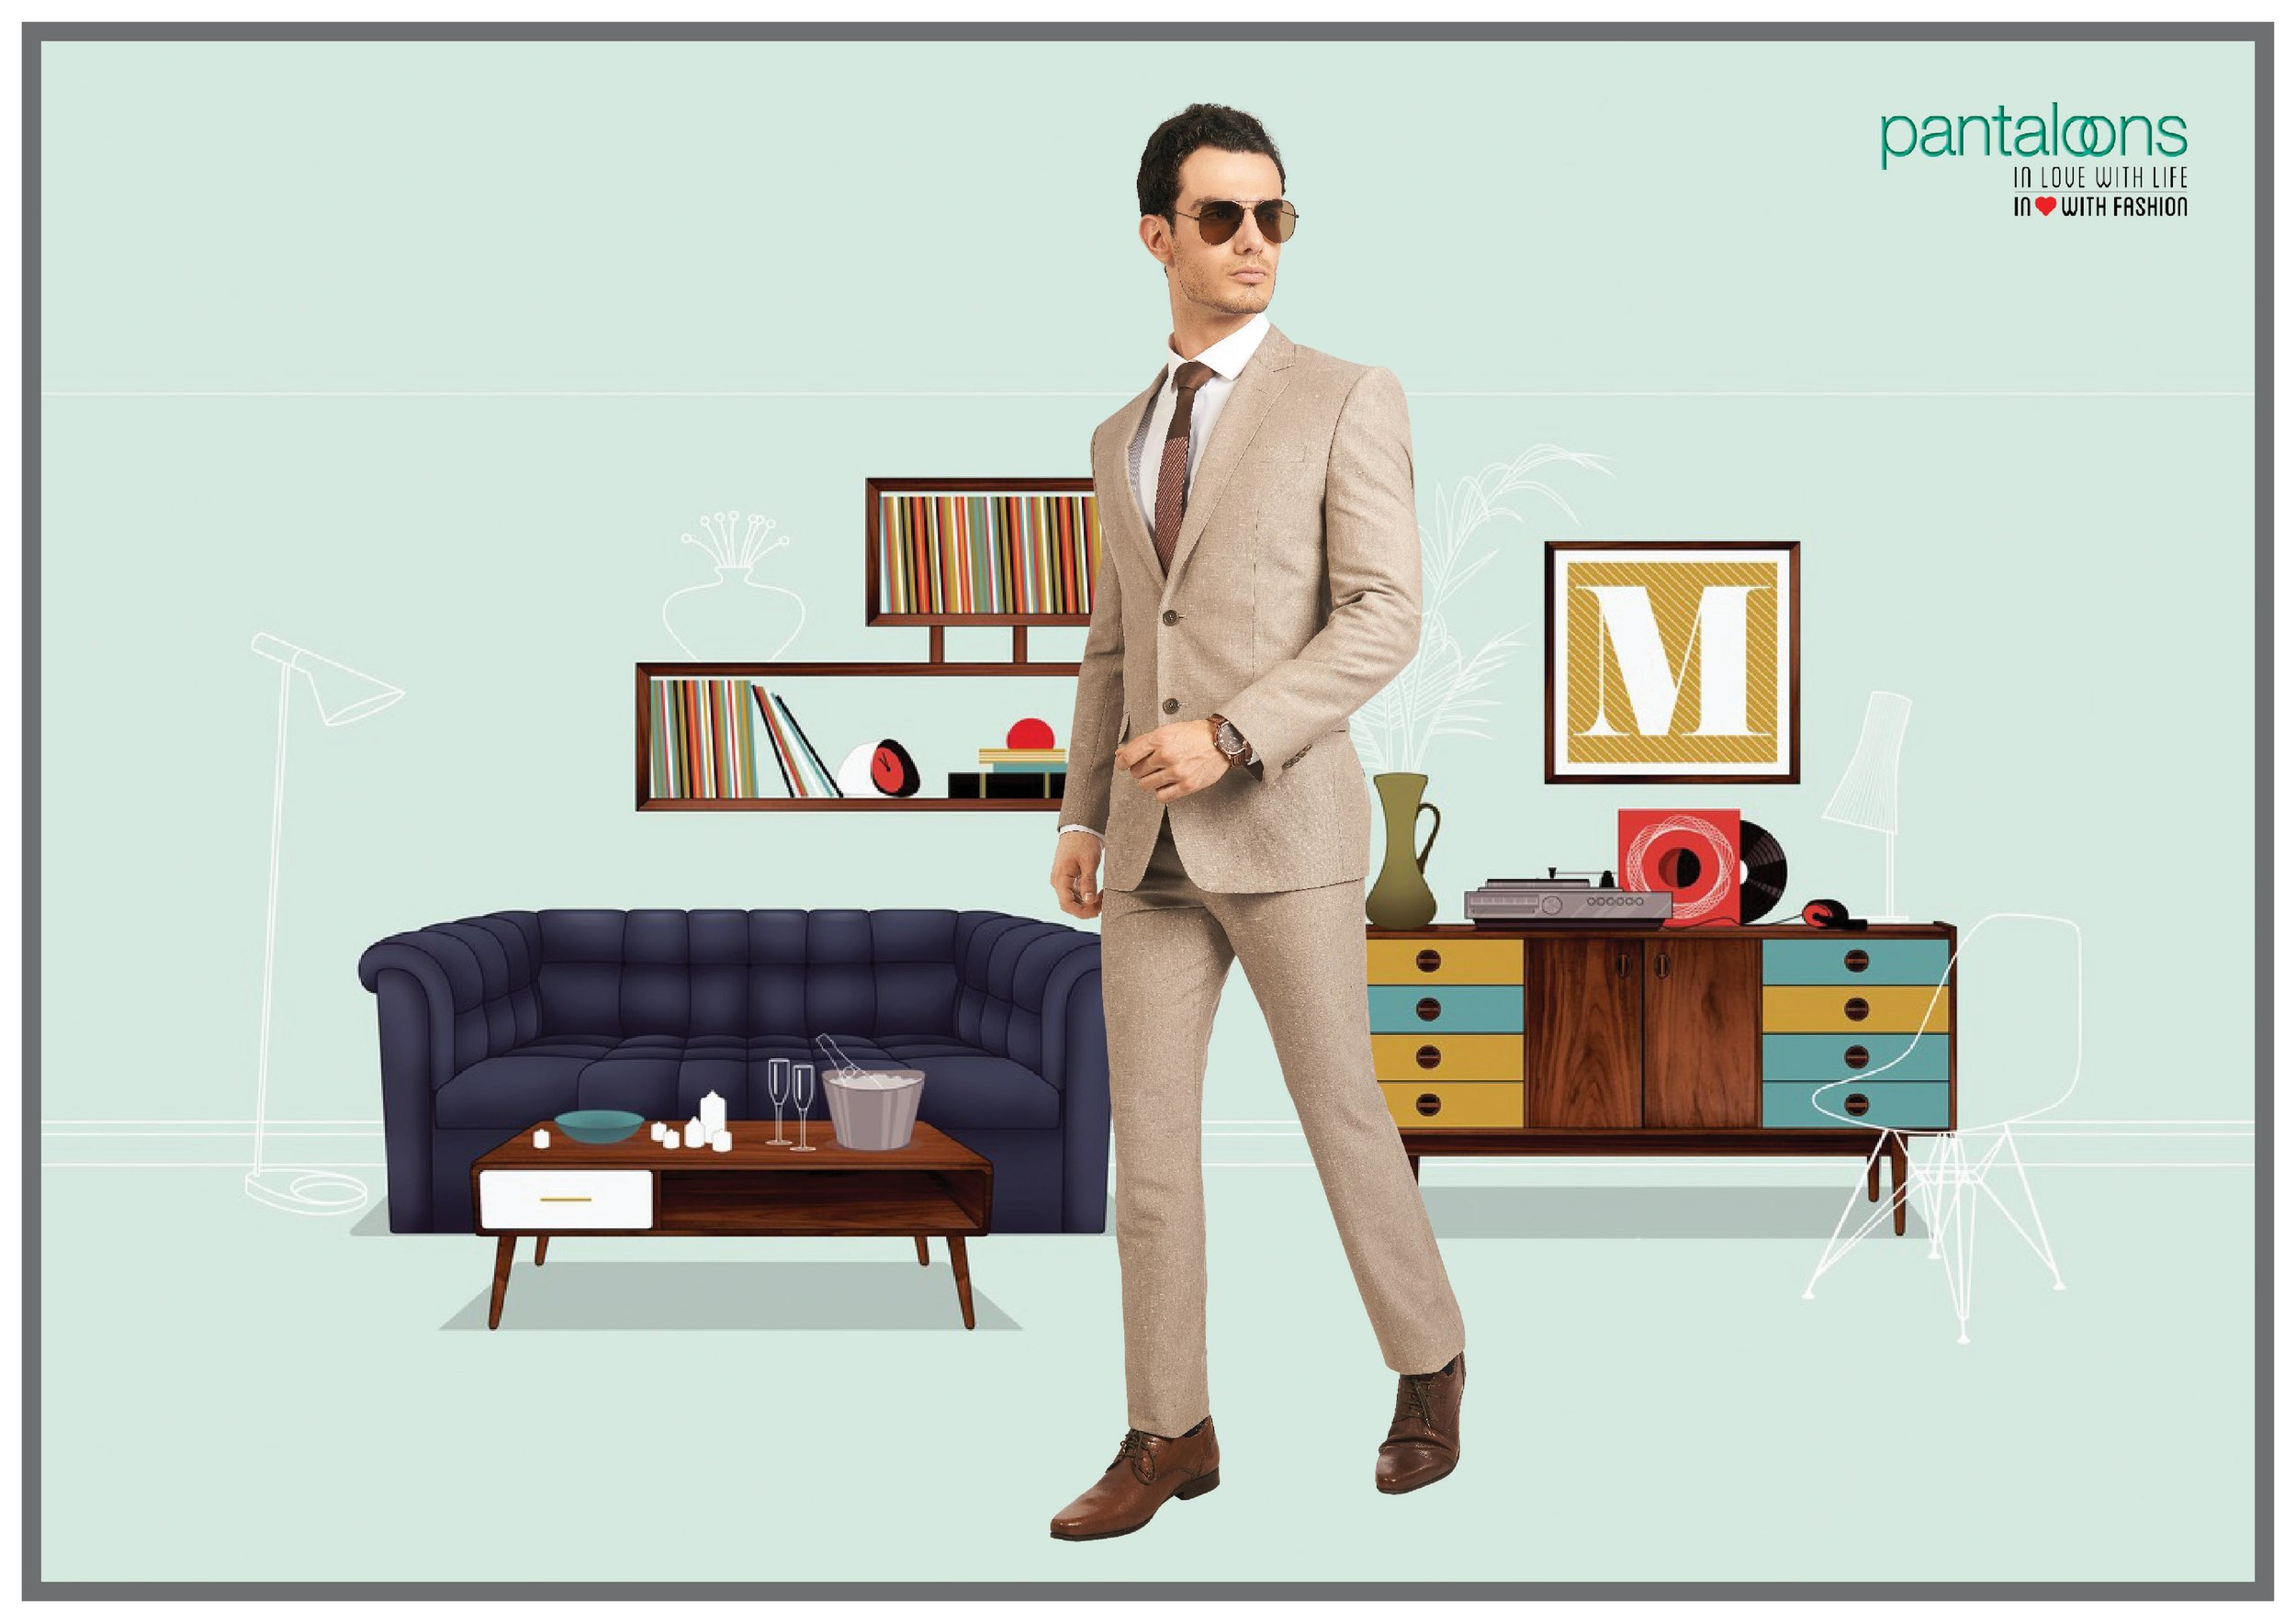 pantaloons Posters New-office-06.jpg